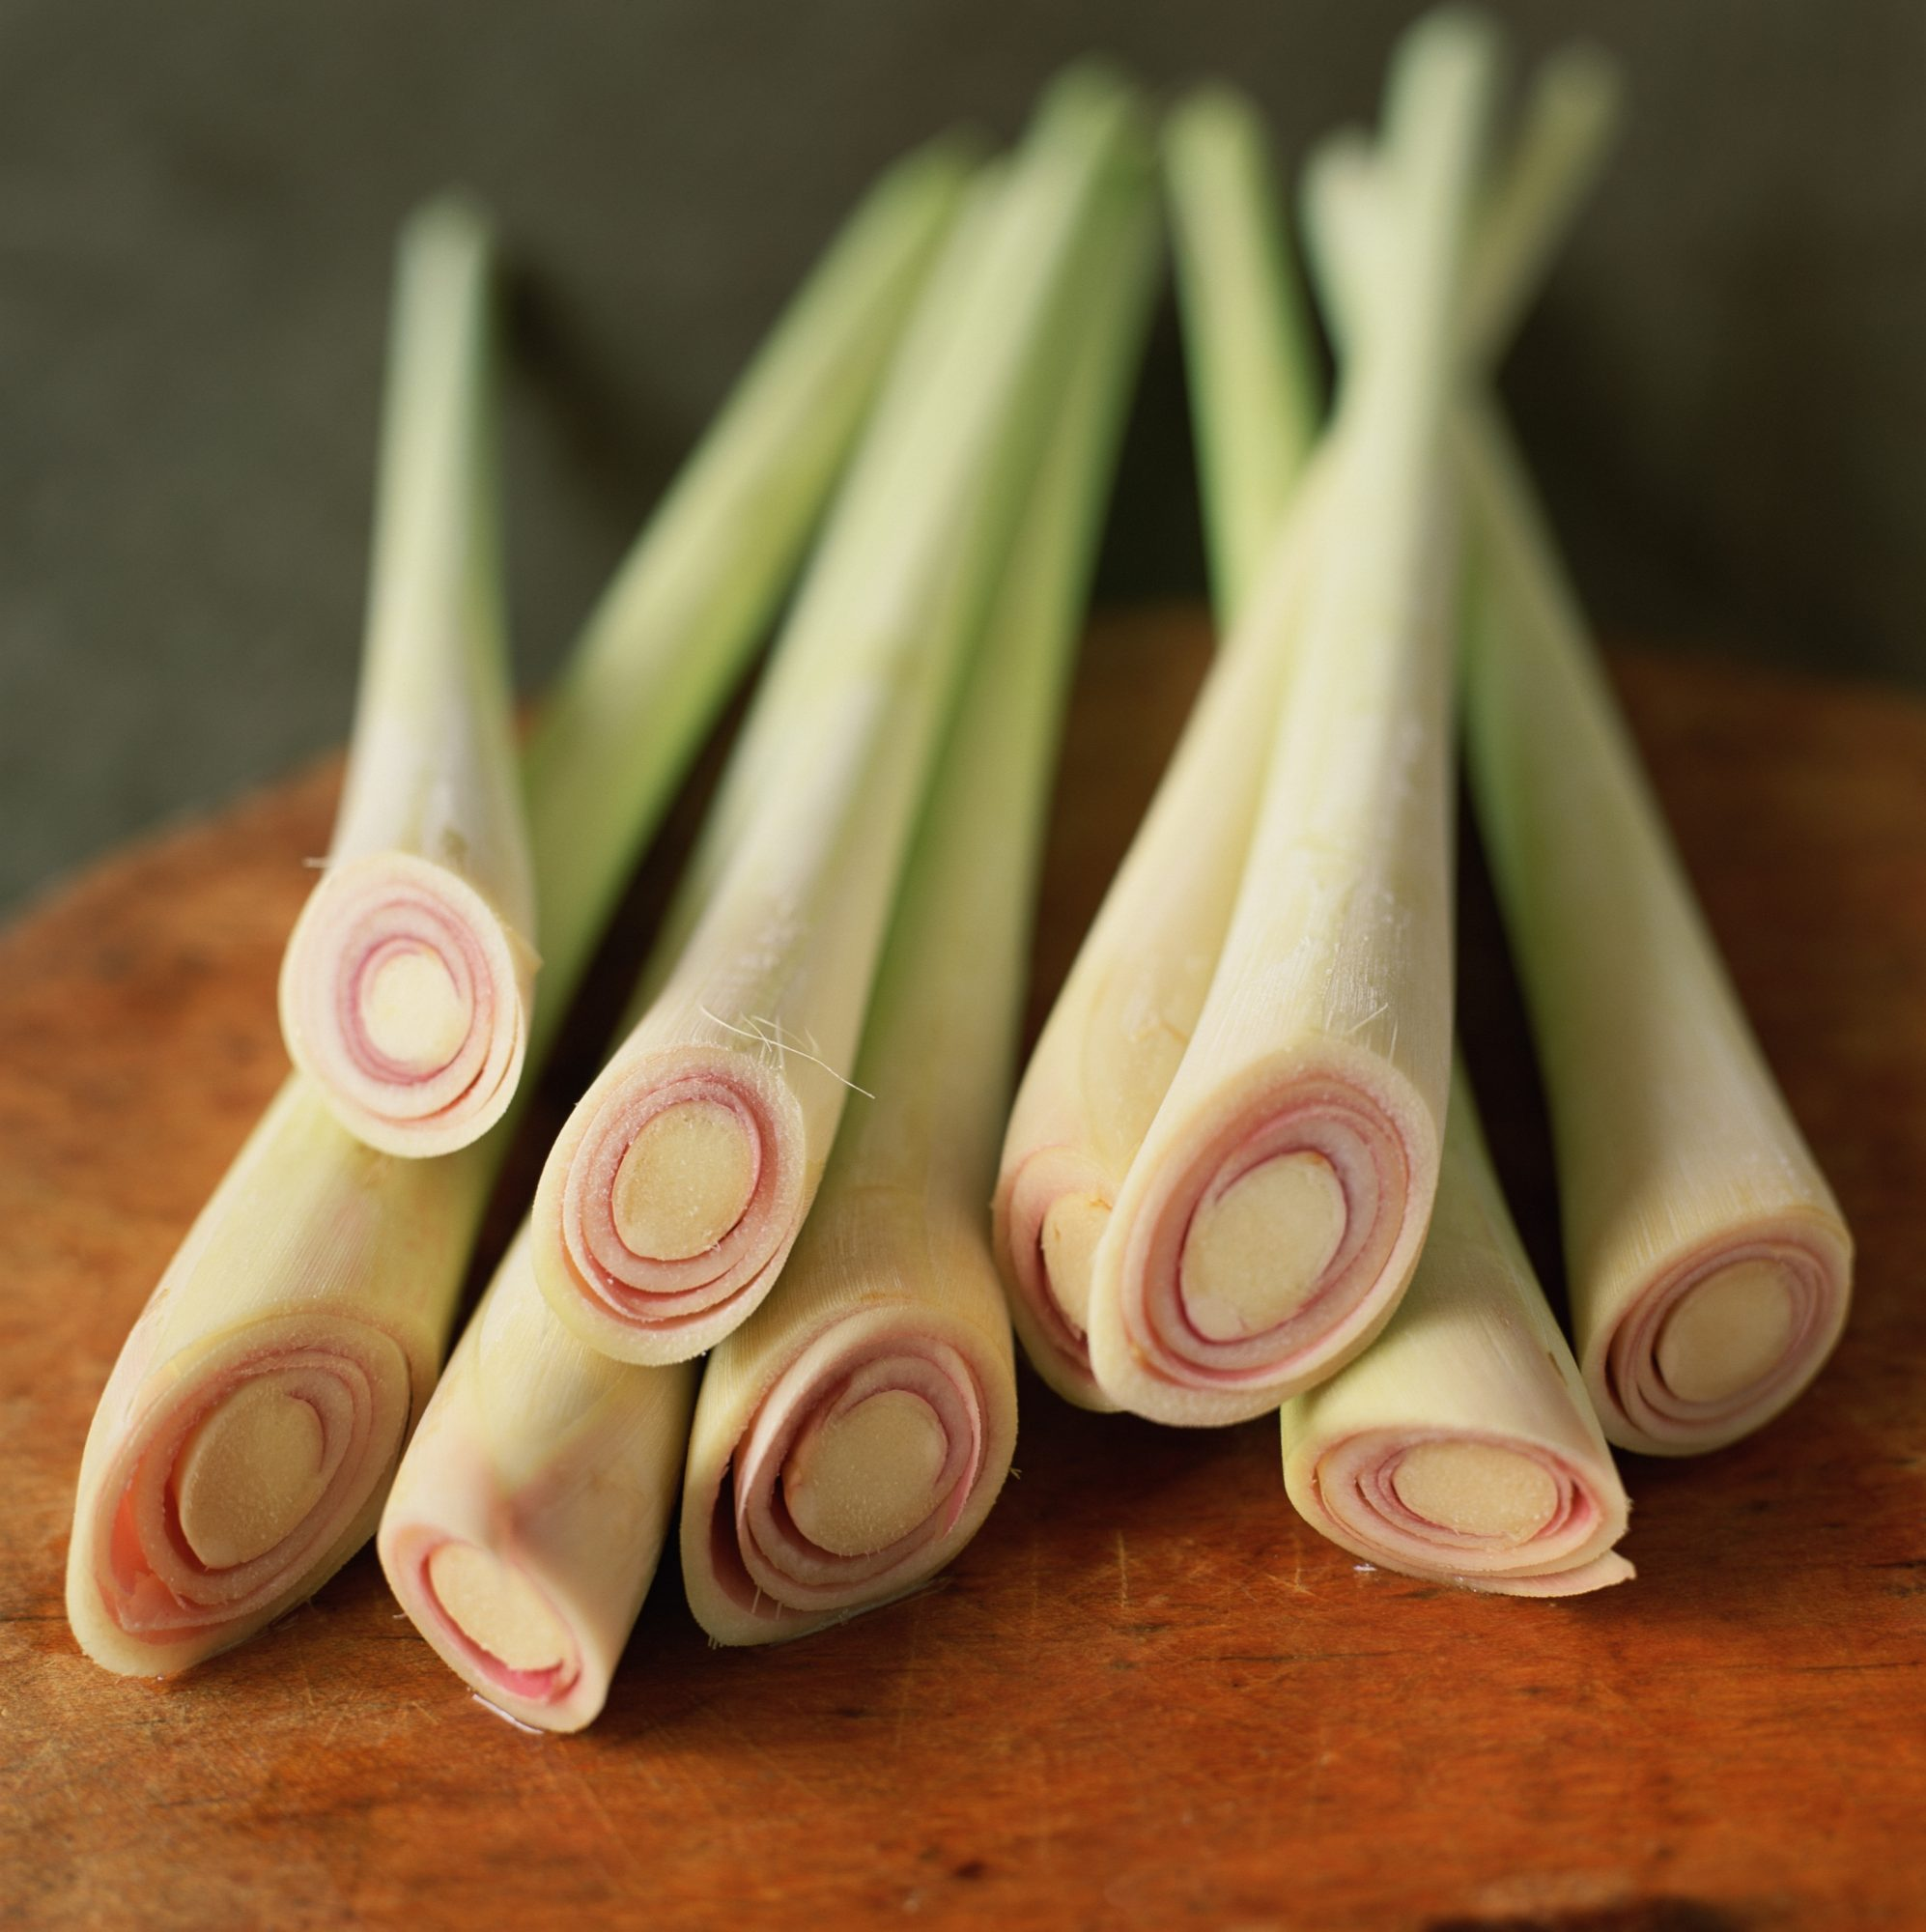 Did You Know You Can Grow Your Own Lemongrass at Home?